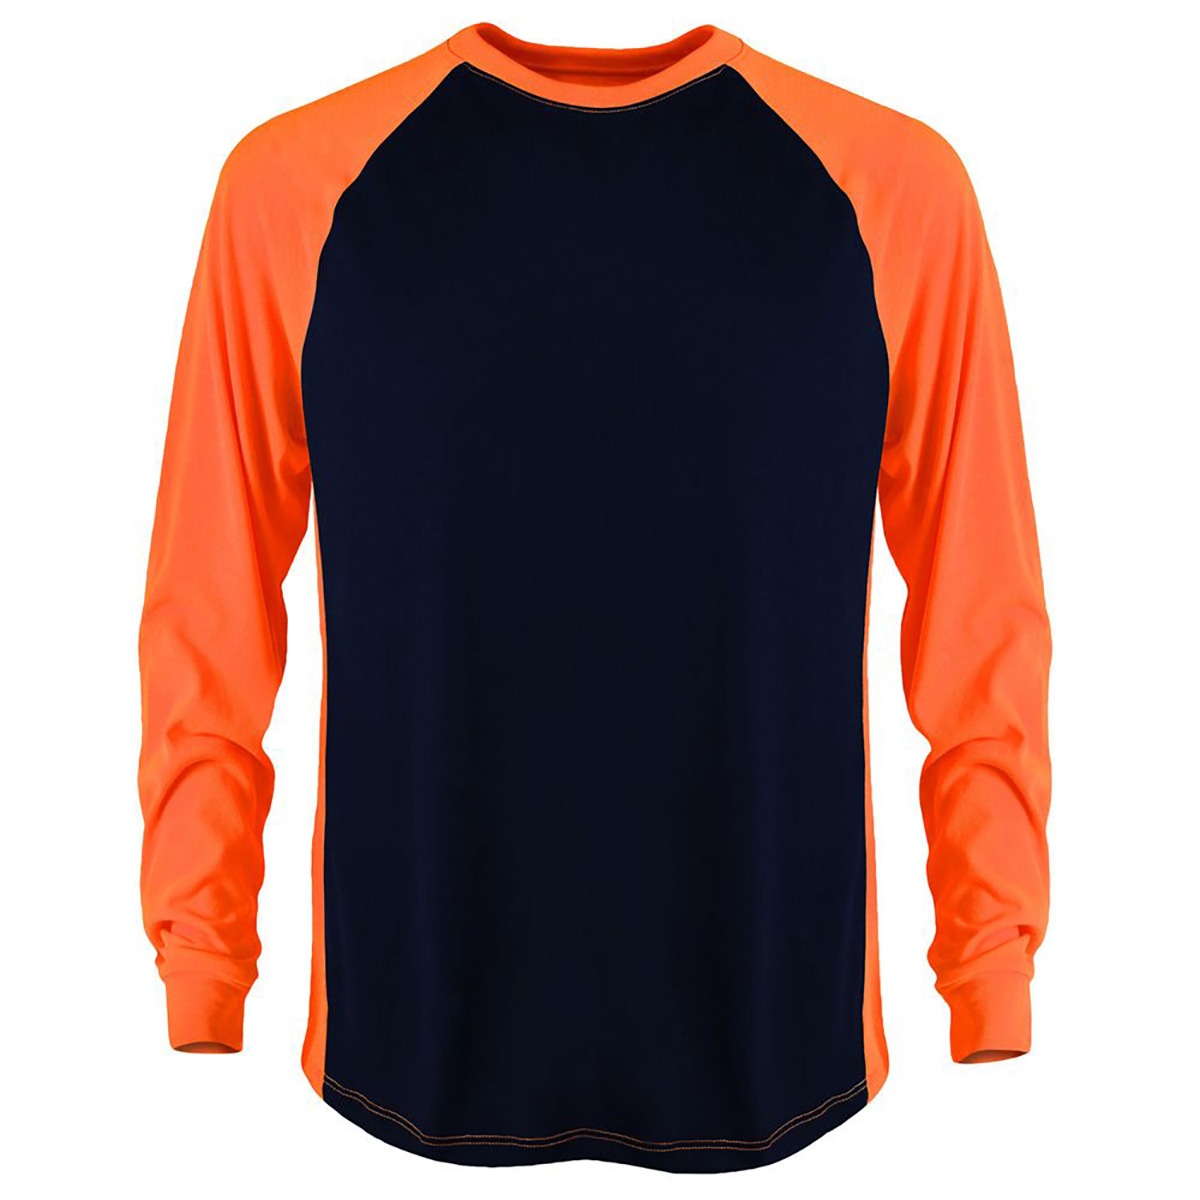 Arborwear Men's Two Tone Tech T-Shirt Long Sleeve 706586